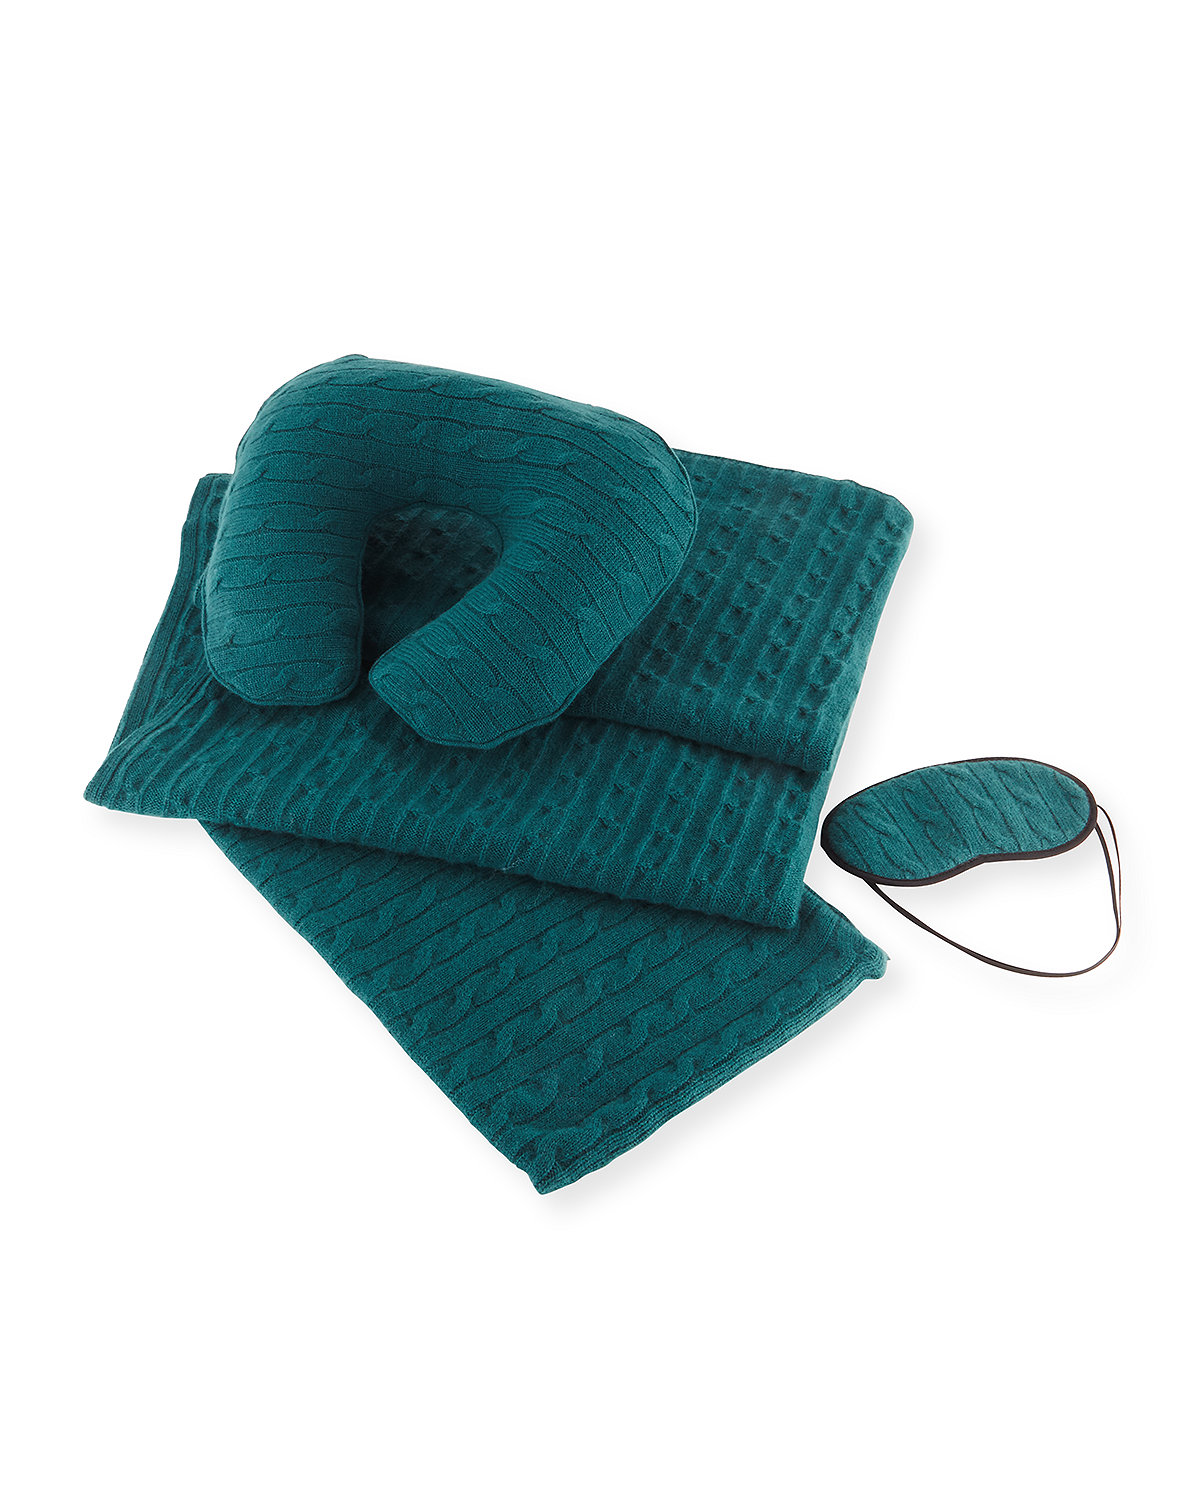 Sofia Cashmere Accessories CASHMERE CABLE-KNIT TRAVEL GIFT SET W/ MONOGRAM